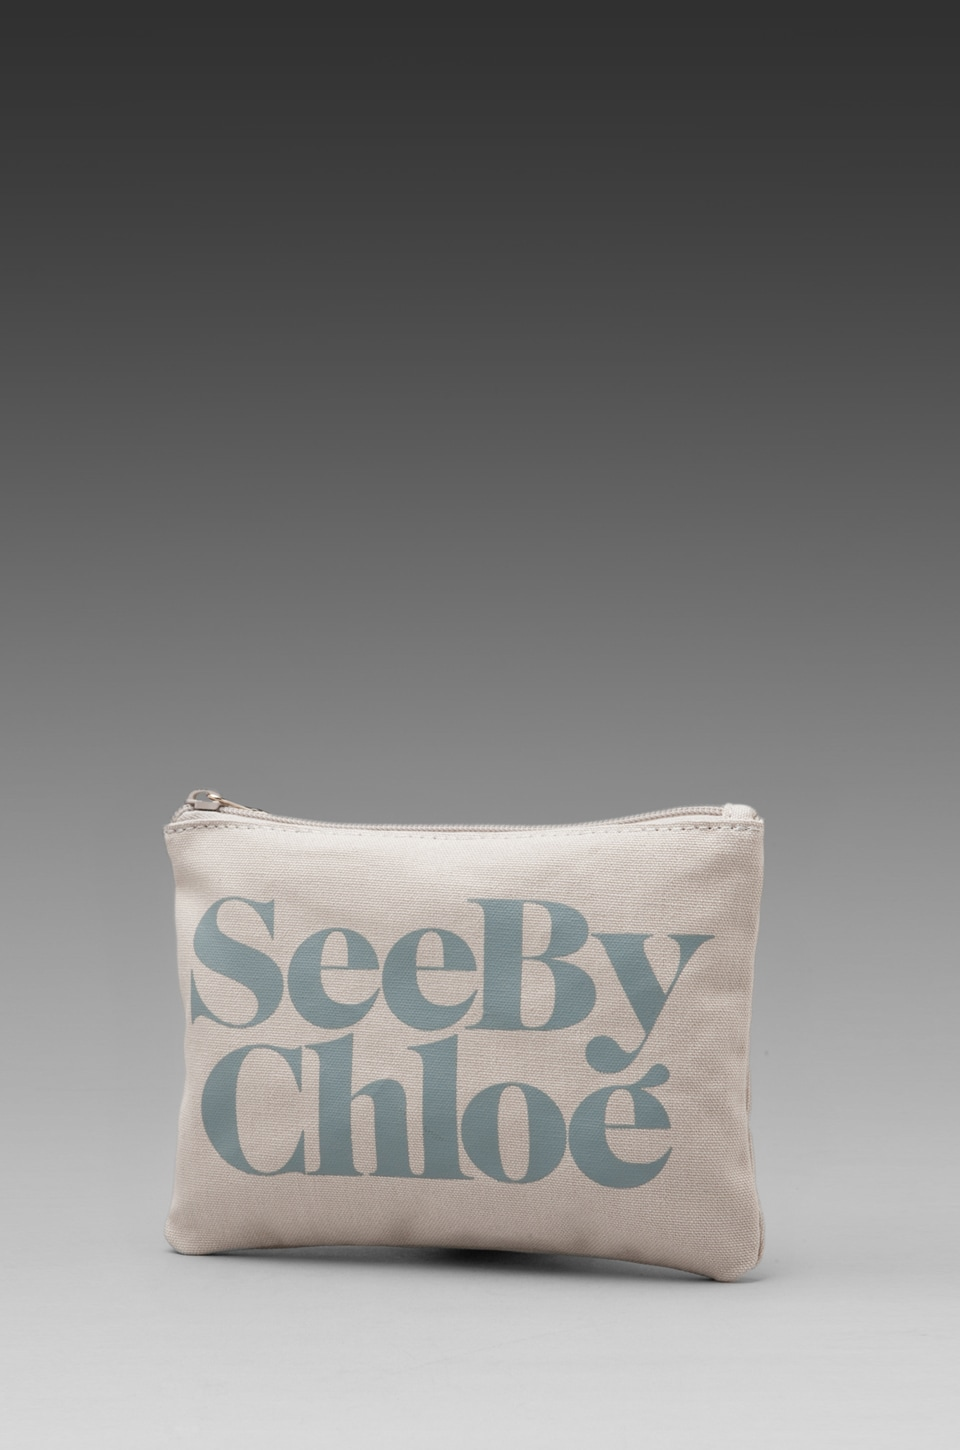 See By Chloe Gimmick Zip Pouch in Opaline